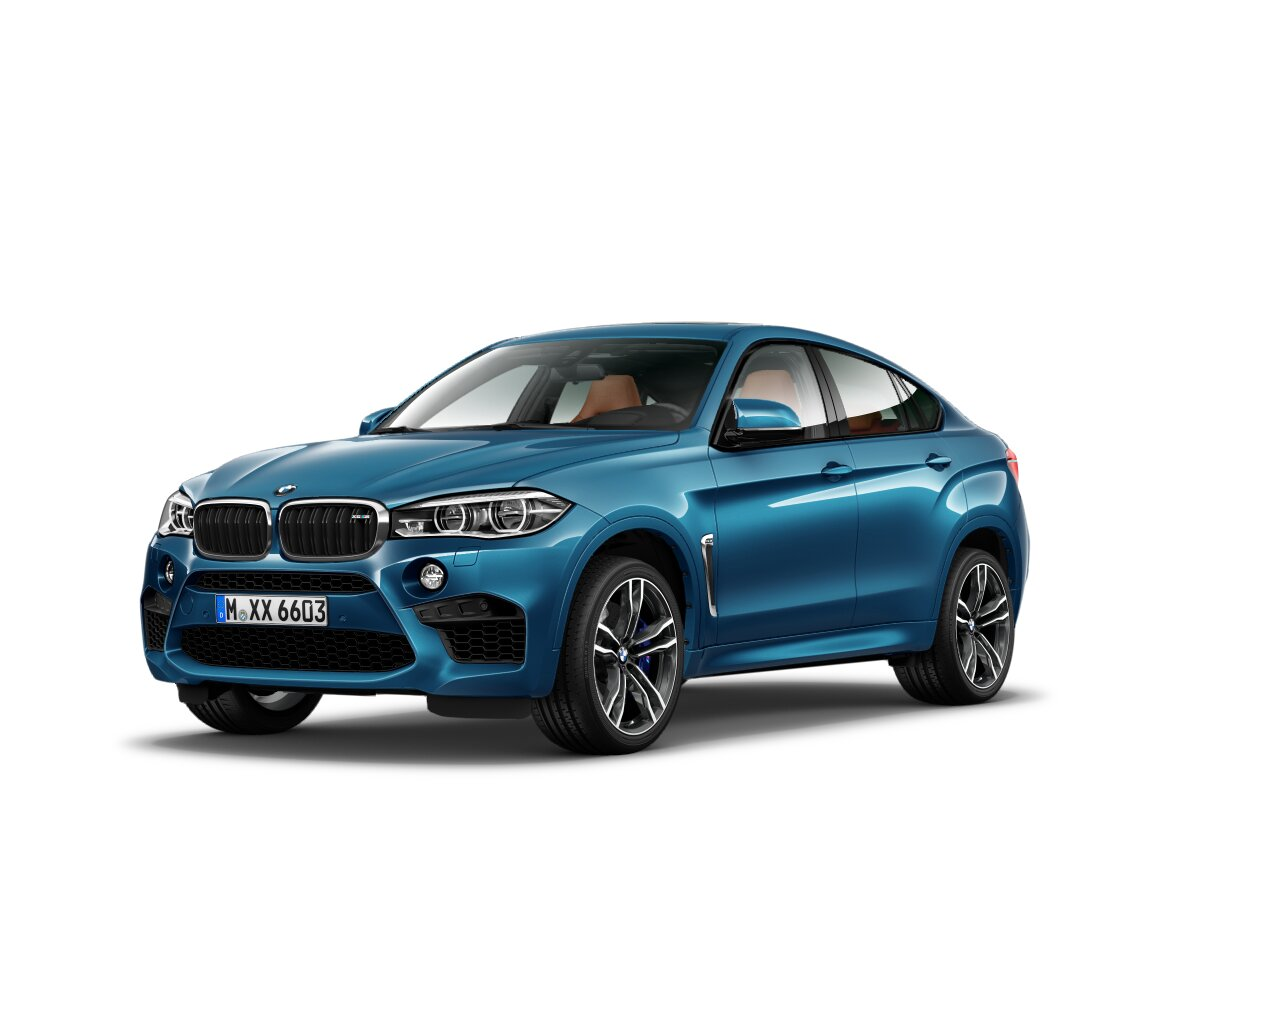 Bmw X6 M Exterior Image Gallery Pictures Photos